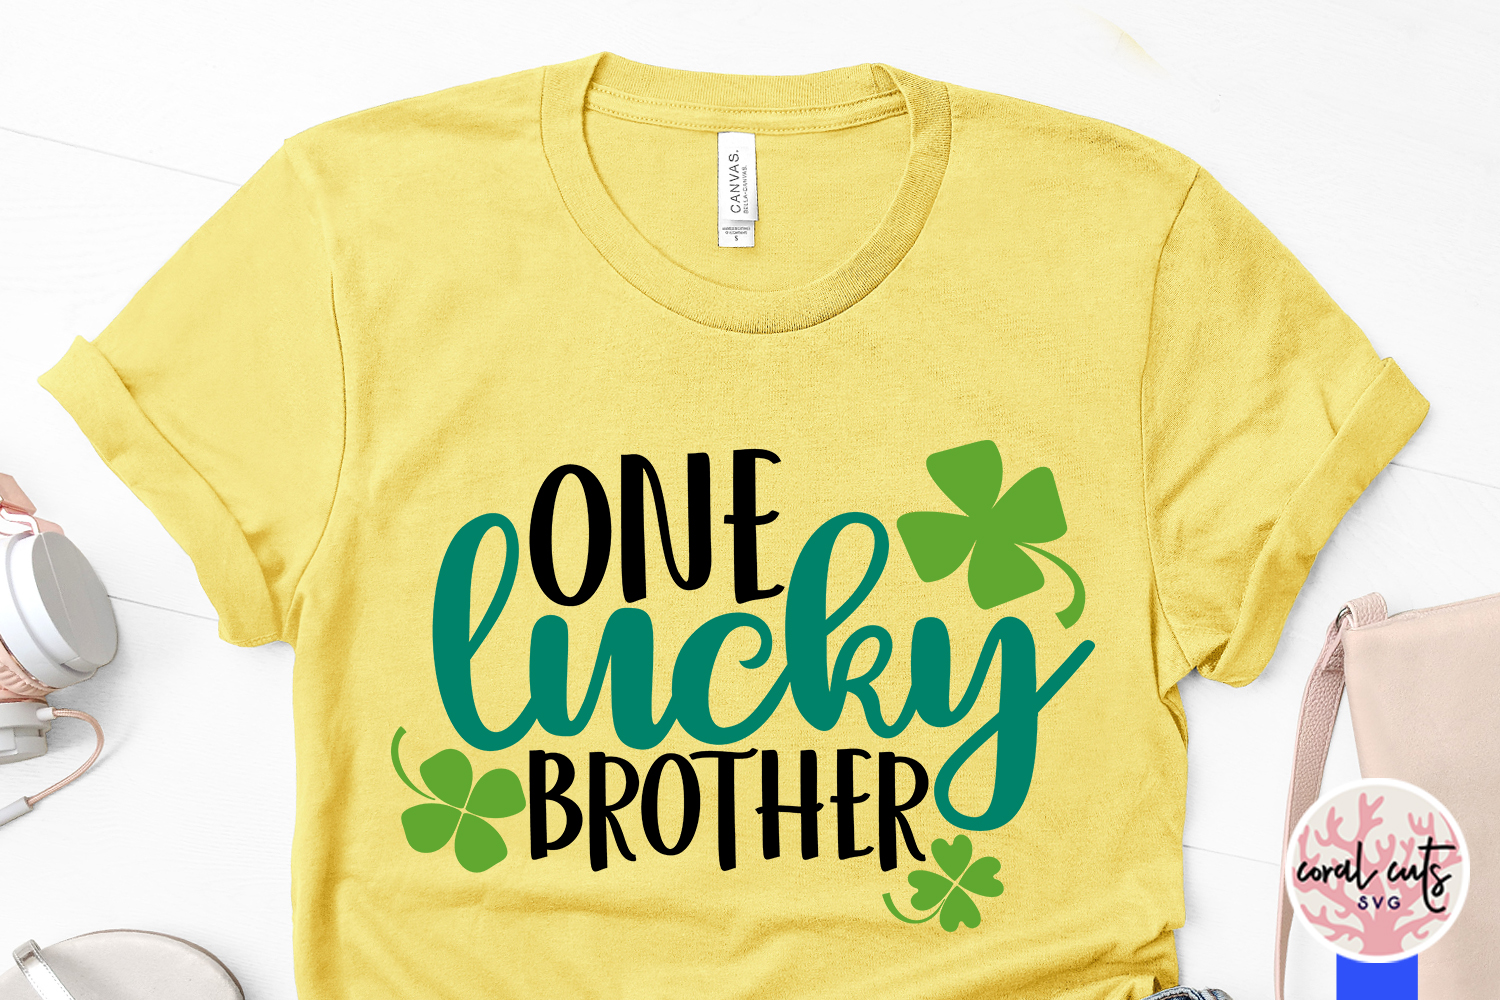 One lucky brother - St. Patrick's Day SVG EPS DXF PNG example image 3